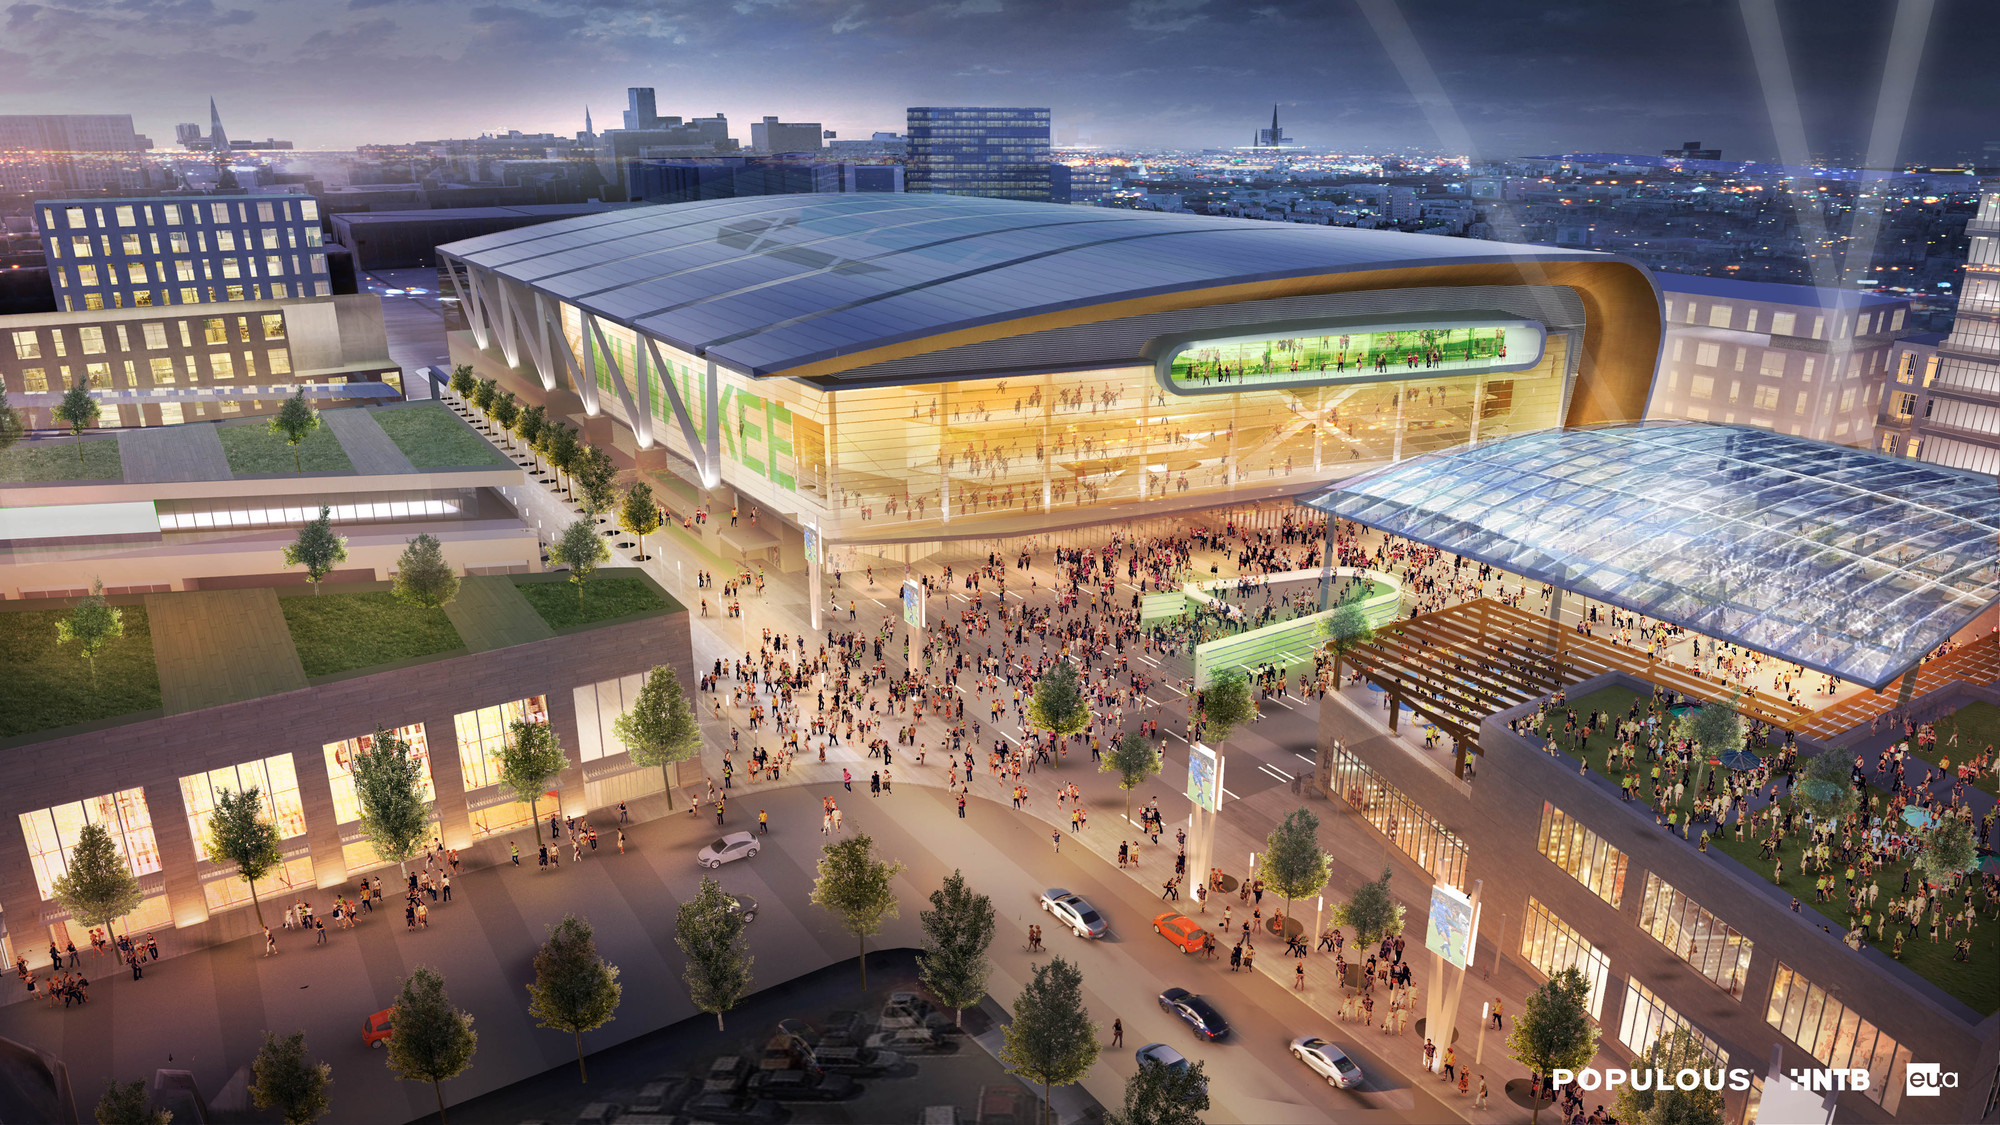 First Renderings of Populous' Downtown Milwaukee Stadium, View from Entertainment District Live Block. Image Courtesy of Populous